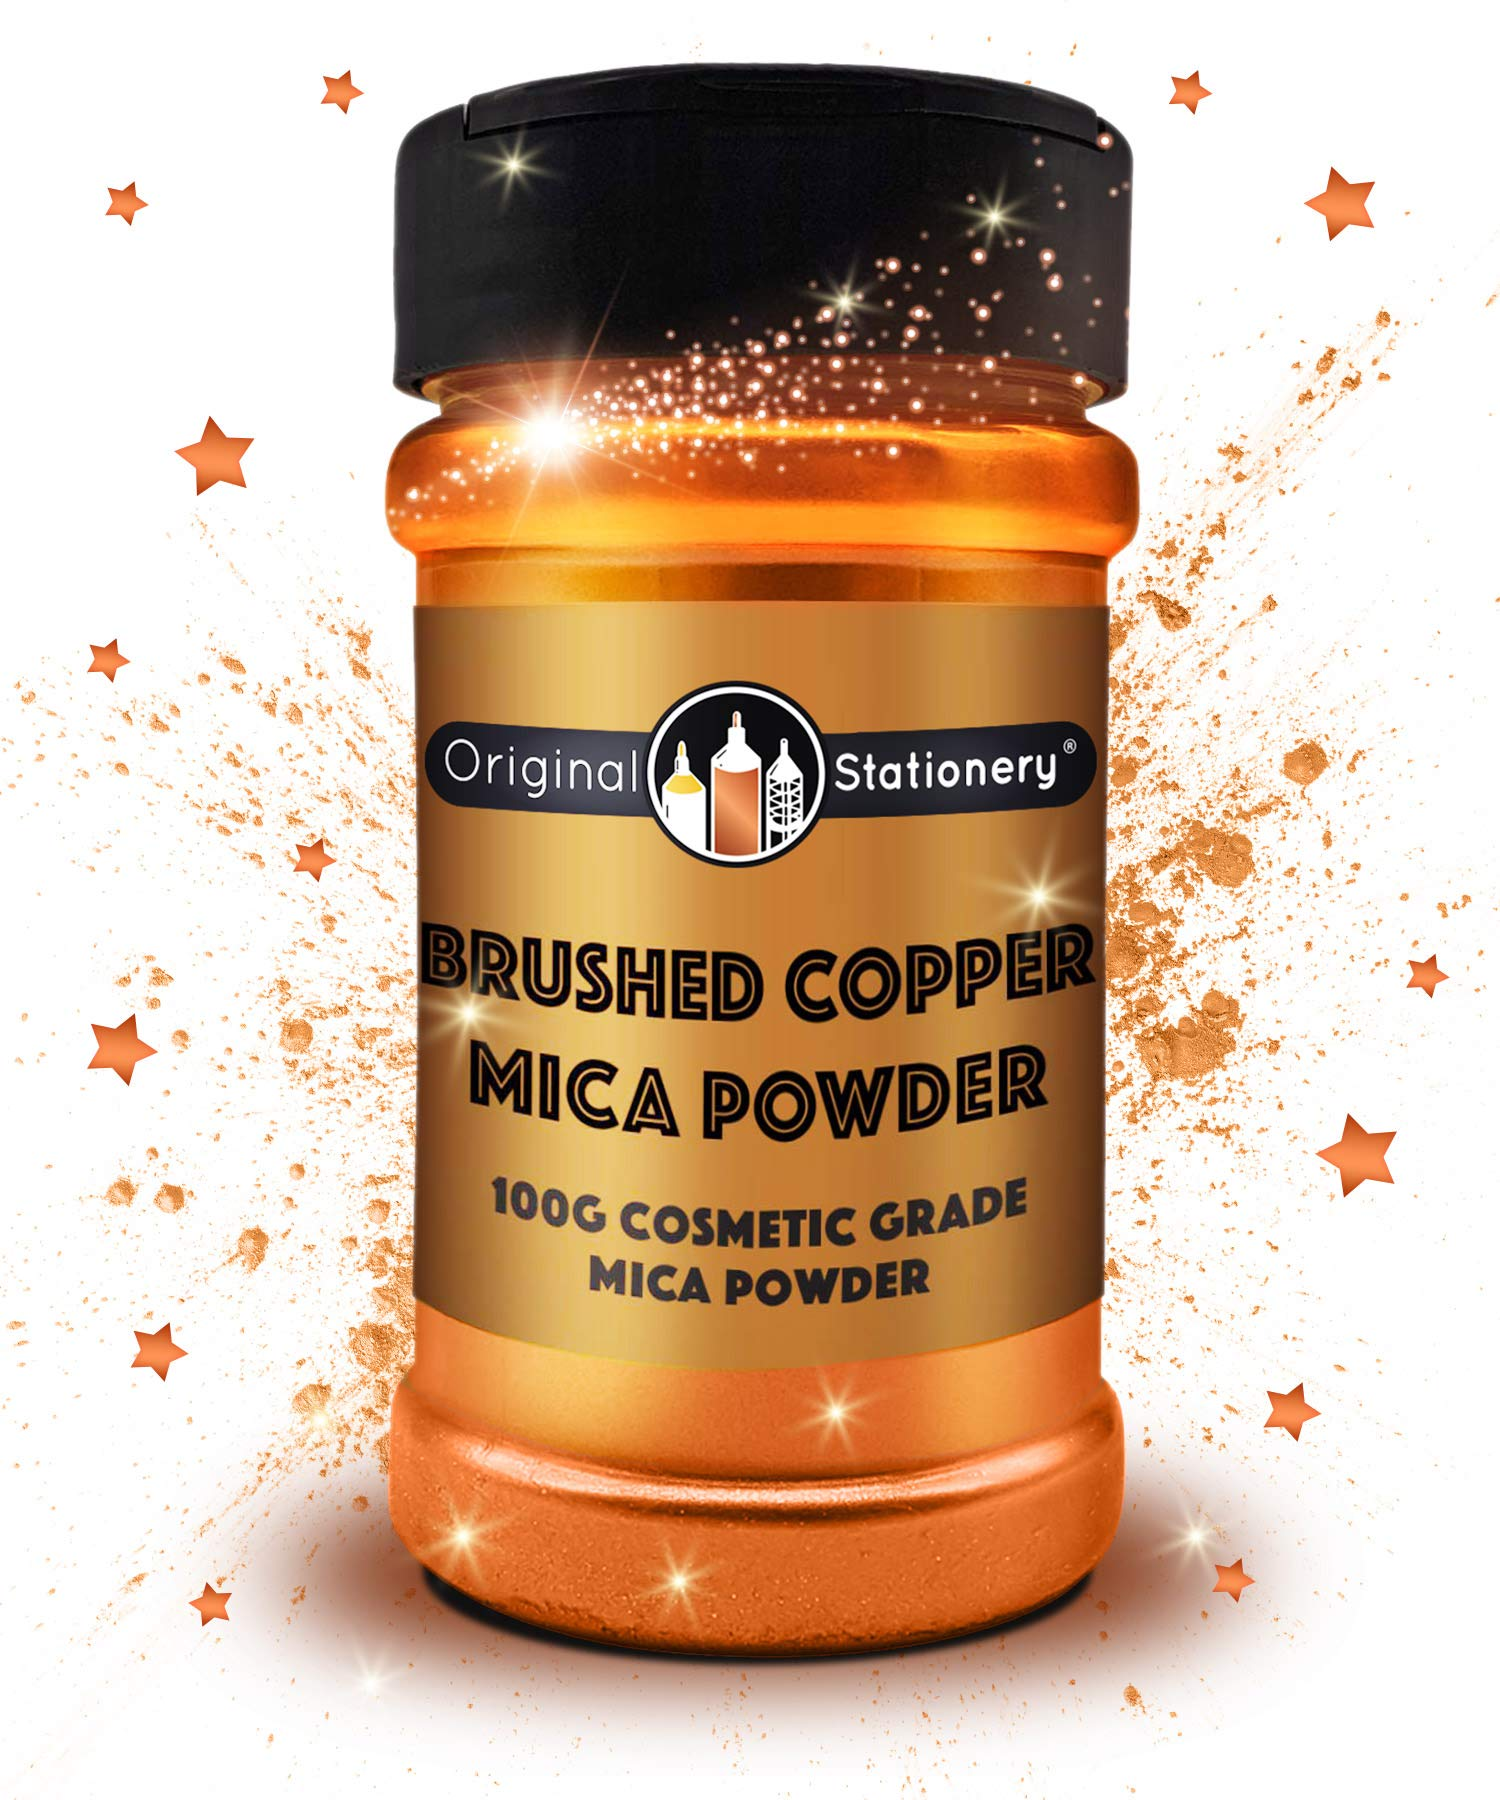 Mica Powder - 3.5 oz / 100 g [HUGE x3-5 THE SIZE OF OUR COMPETITORS] Cosmetic Grade – True Colors – Beautiful Mica for Slime, Soap Making, Bath Bombs, Makeup, Nails, Decor (Brushed Copper)